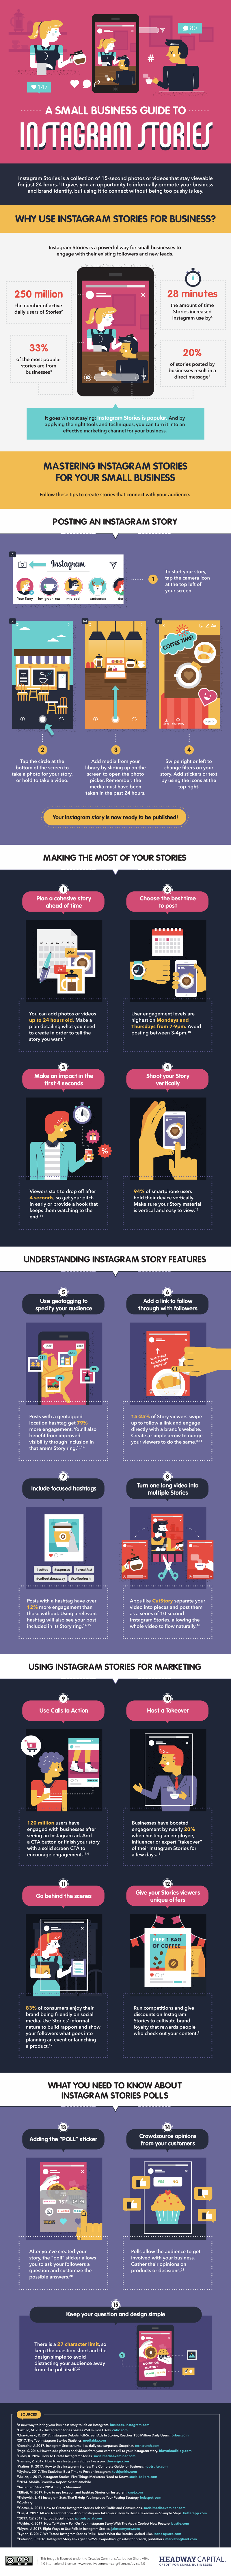 Instagram Stories infographic 2